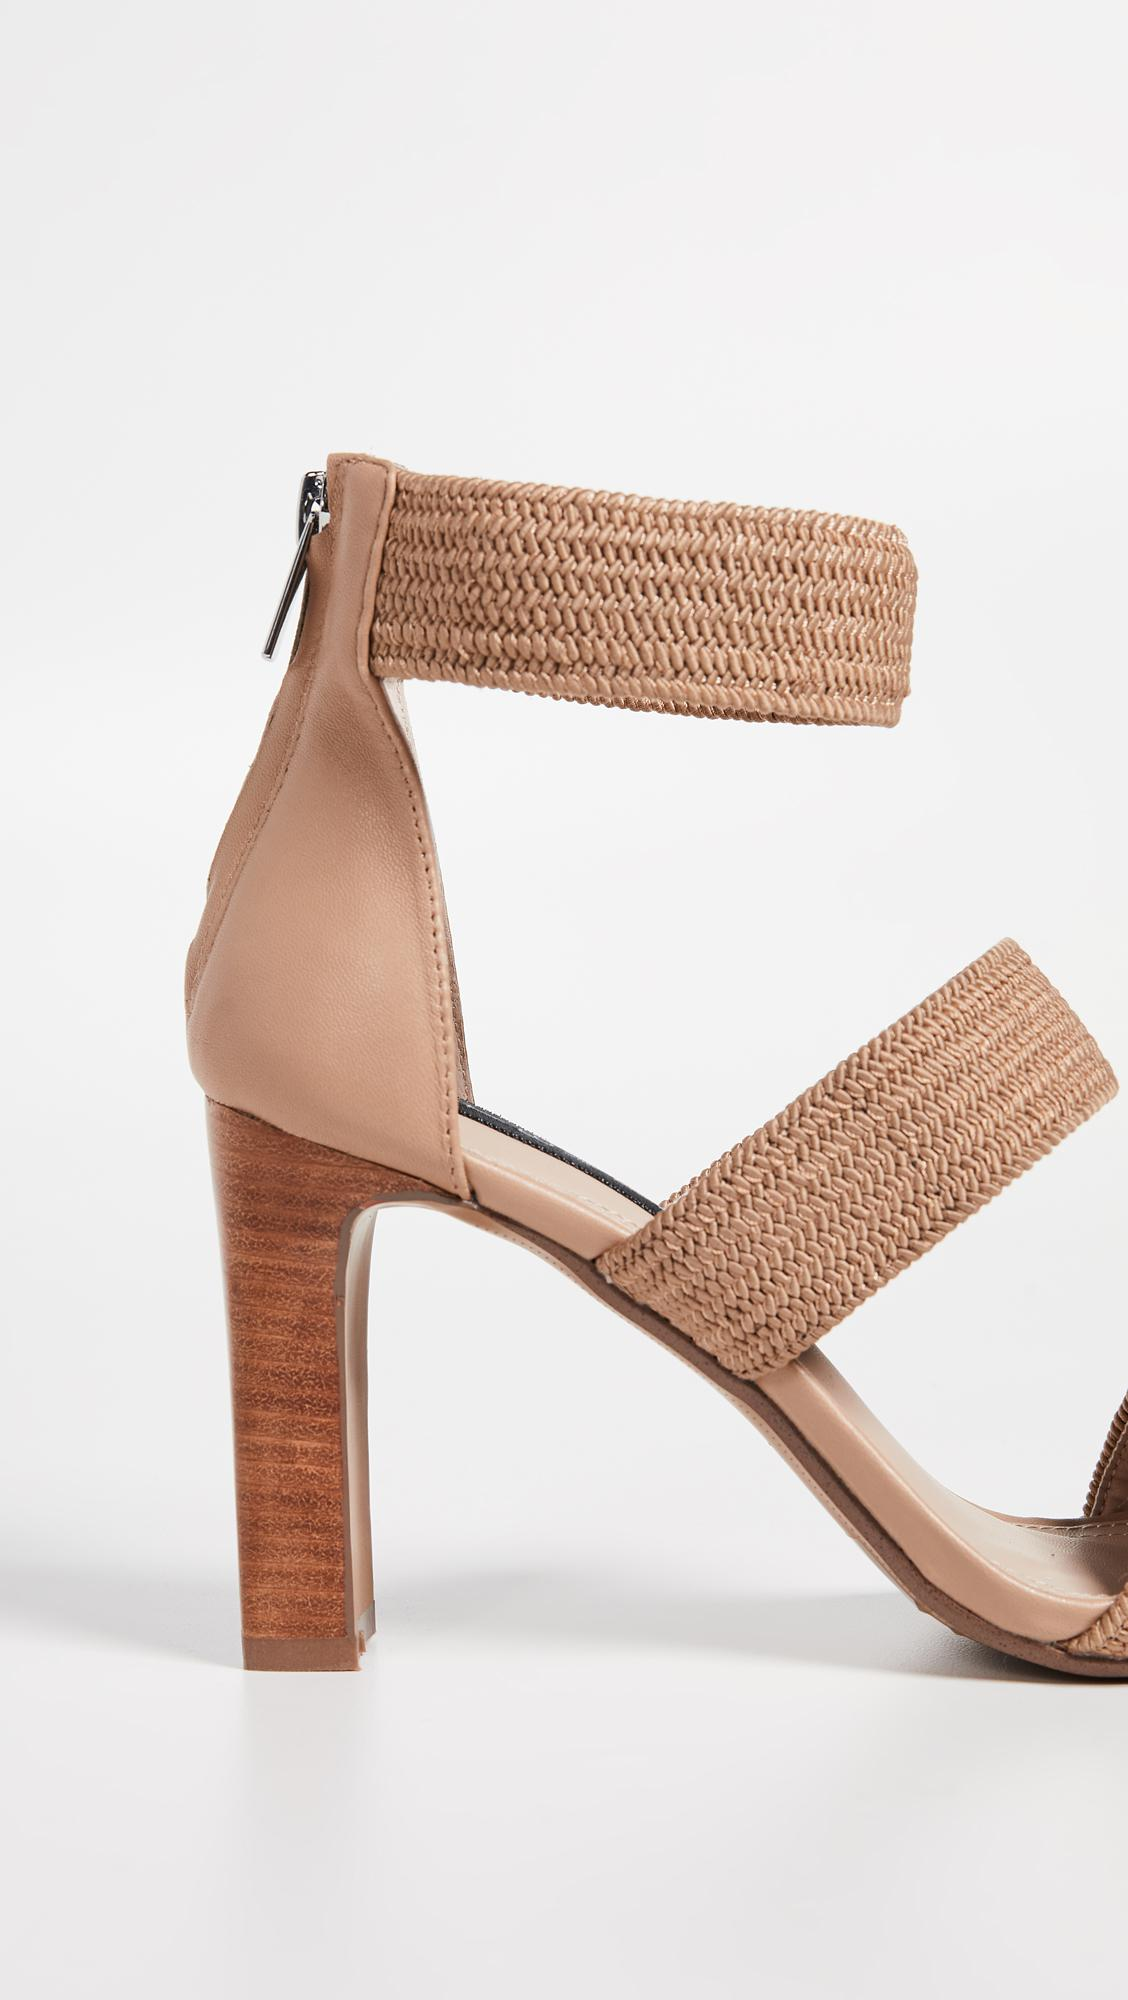 3d97baf4c135 Lyst - Steven by Steve Madden Jelly Strappy Sandals in Natural